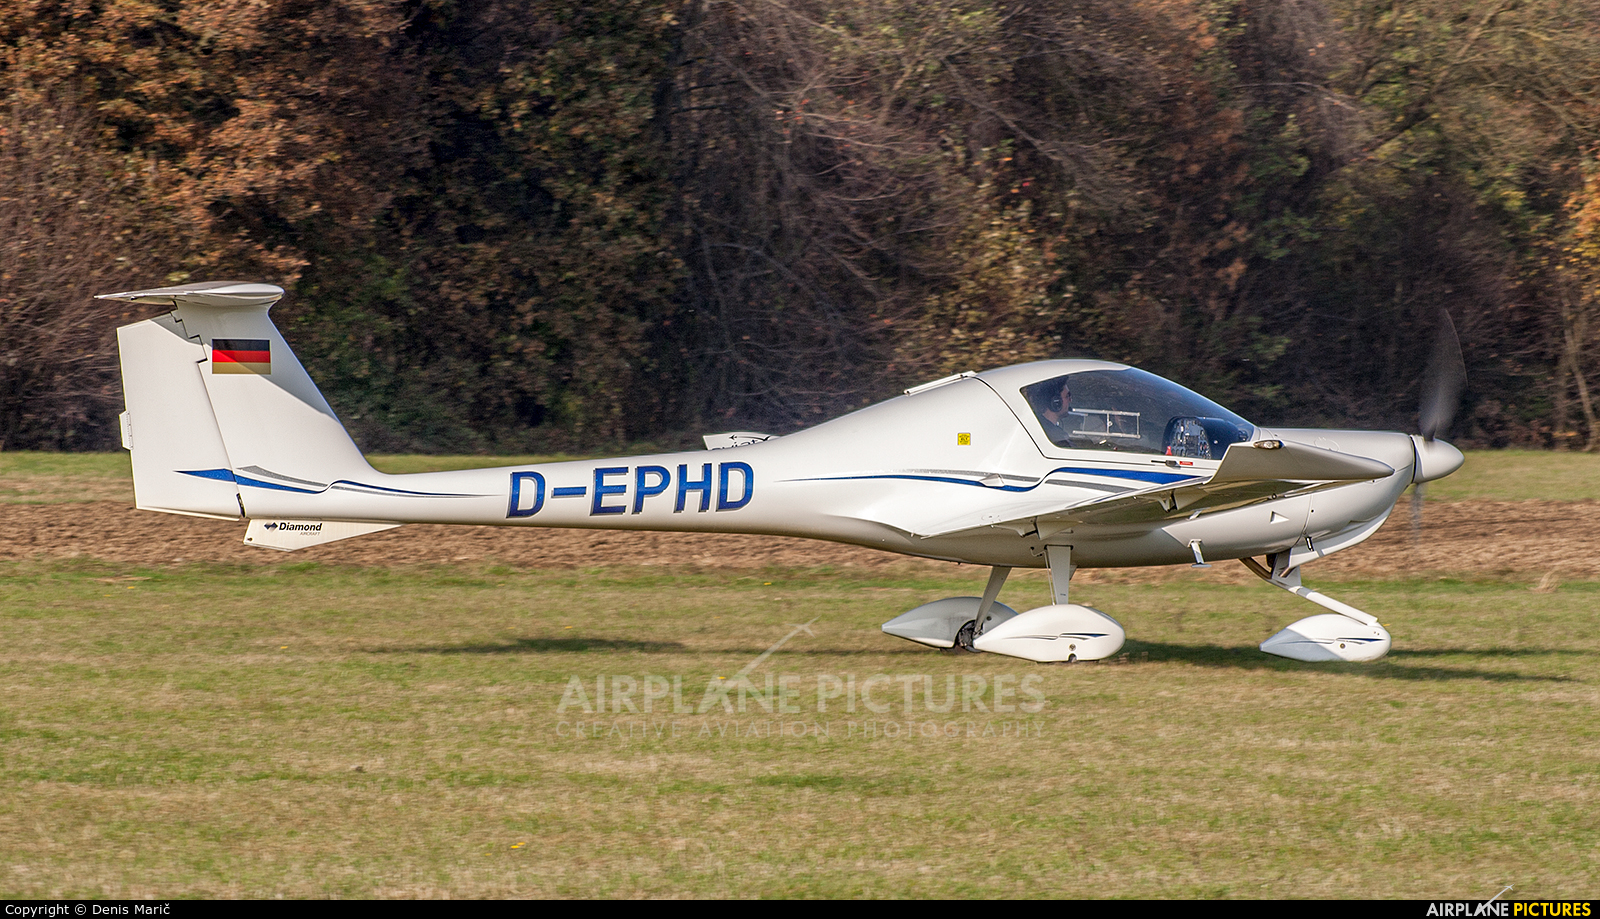 mirko photo hb motorfluggruppe sgg da chur diamond eclipse